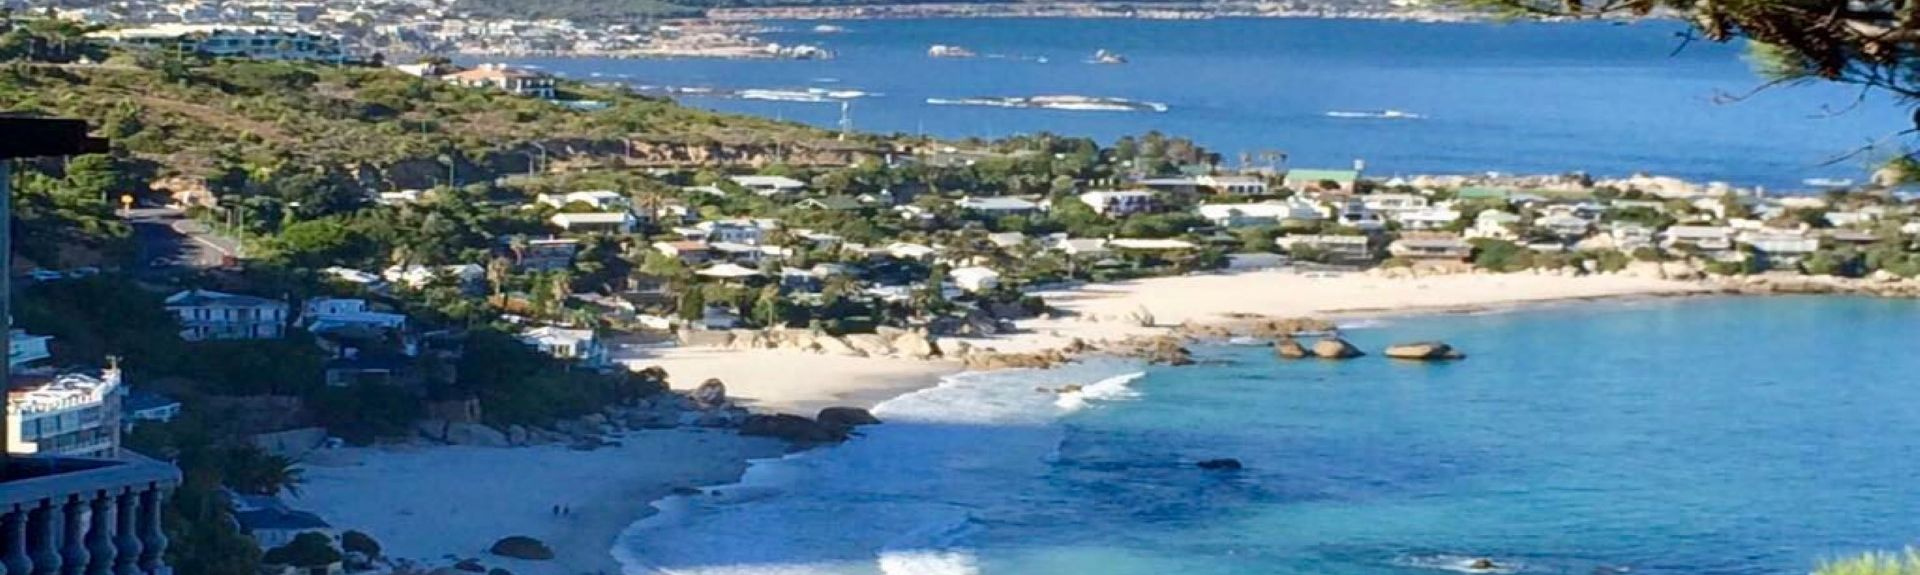 Clifton, Cape Town, Western Cape (province), South Africa